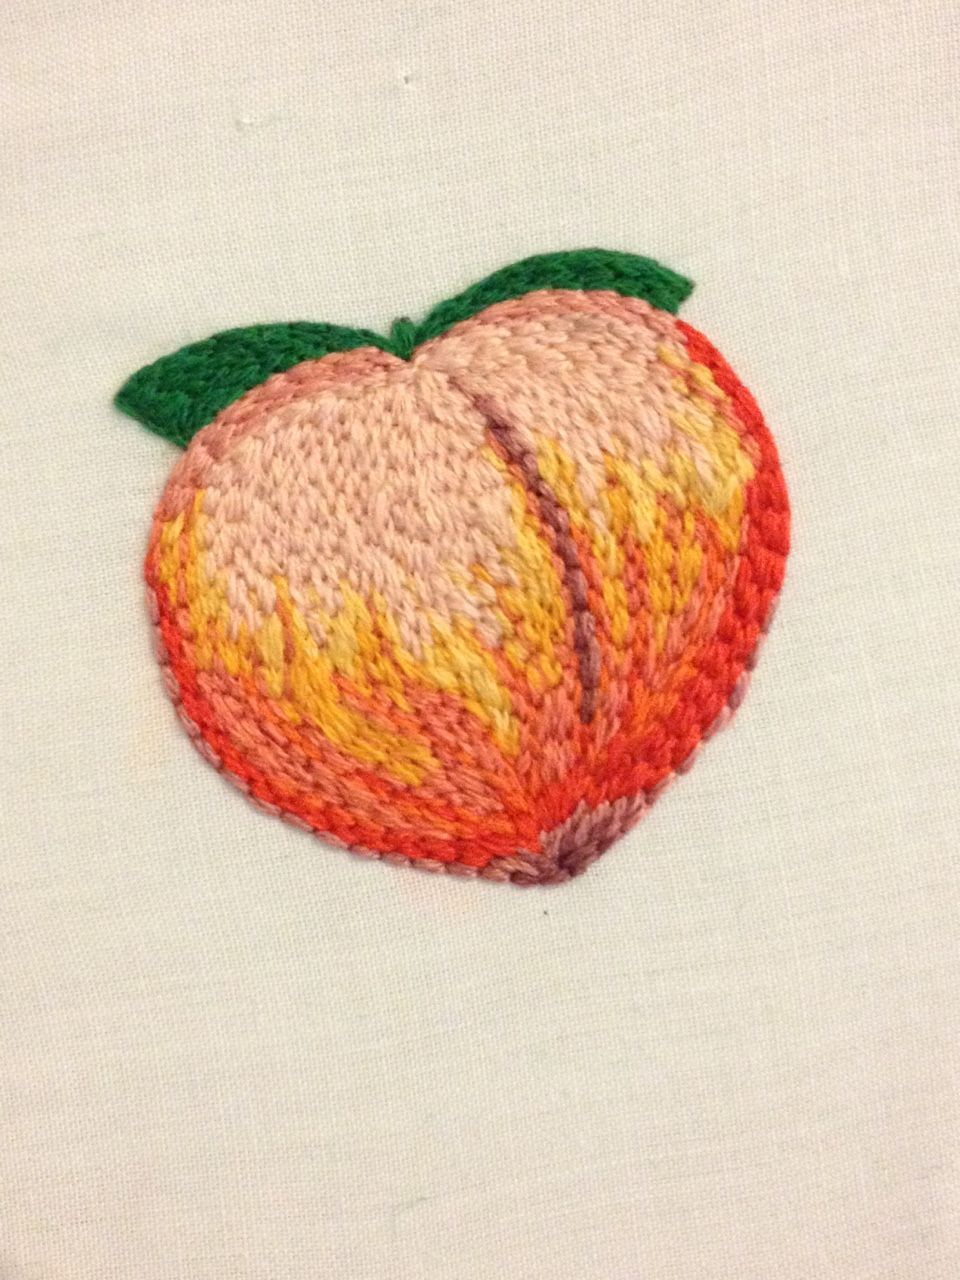 Hoe To Paint With Hand Embroidery